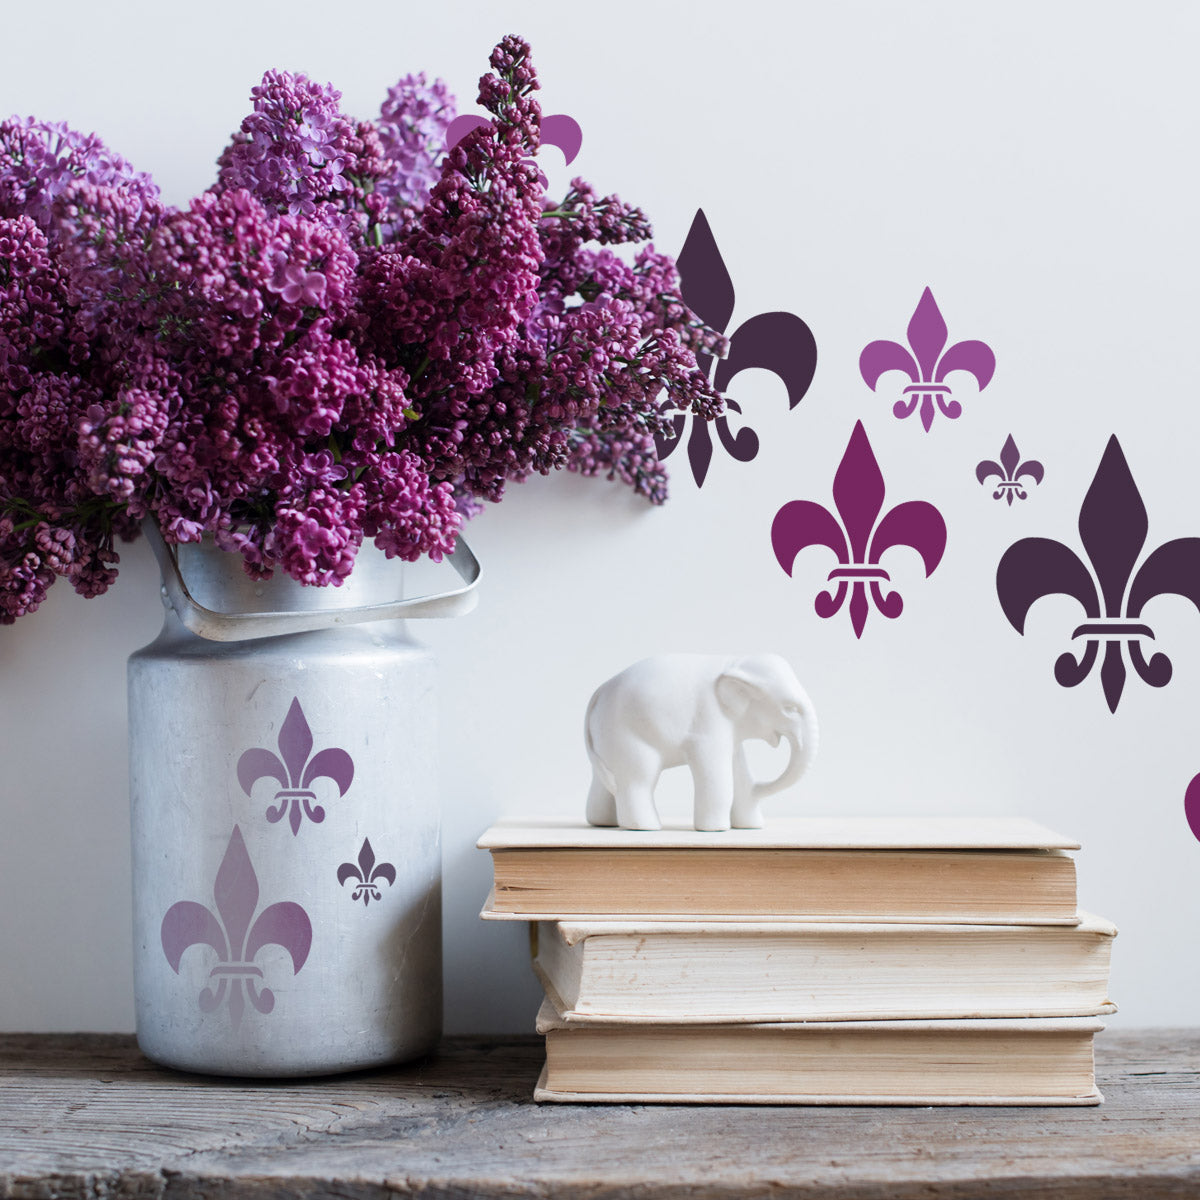 CrafStar Classic Fleur De Lys Stencil Set in Purples